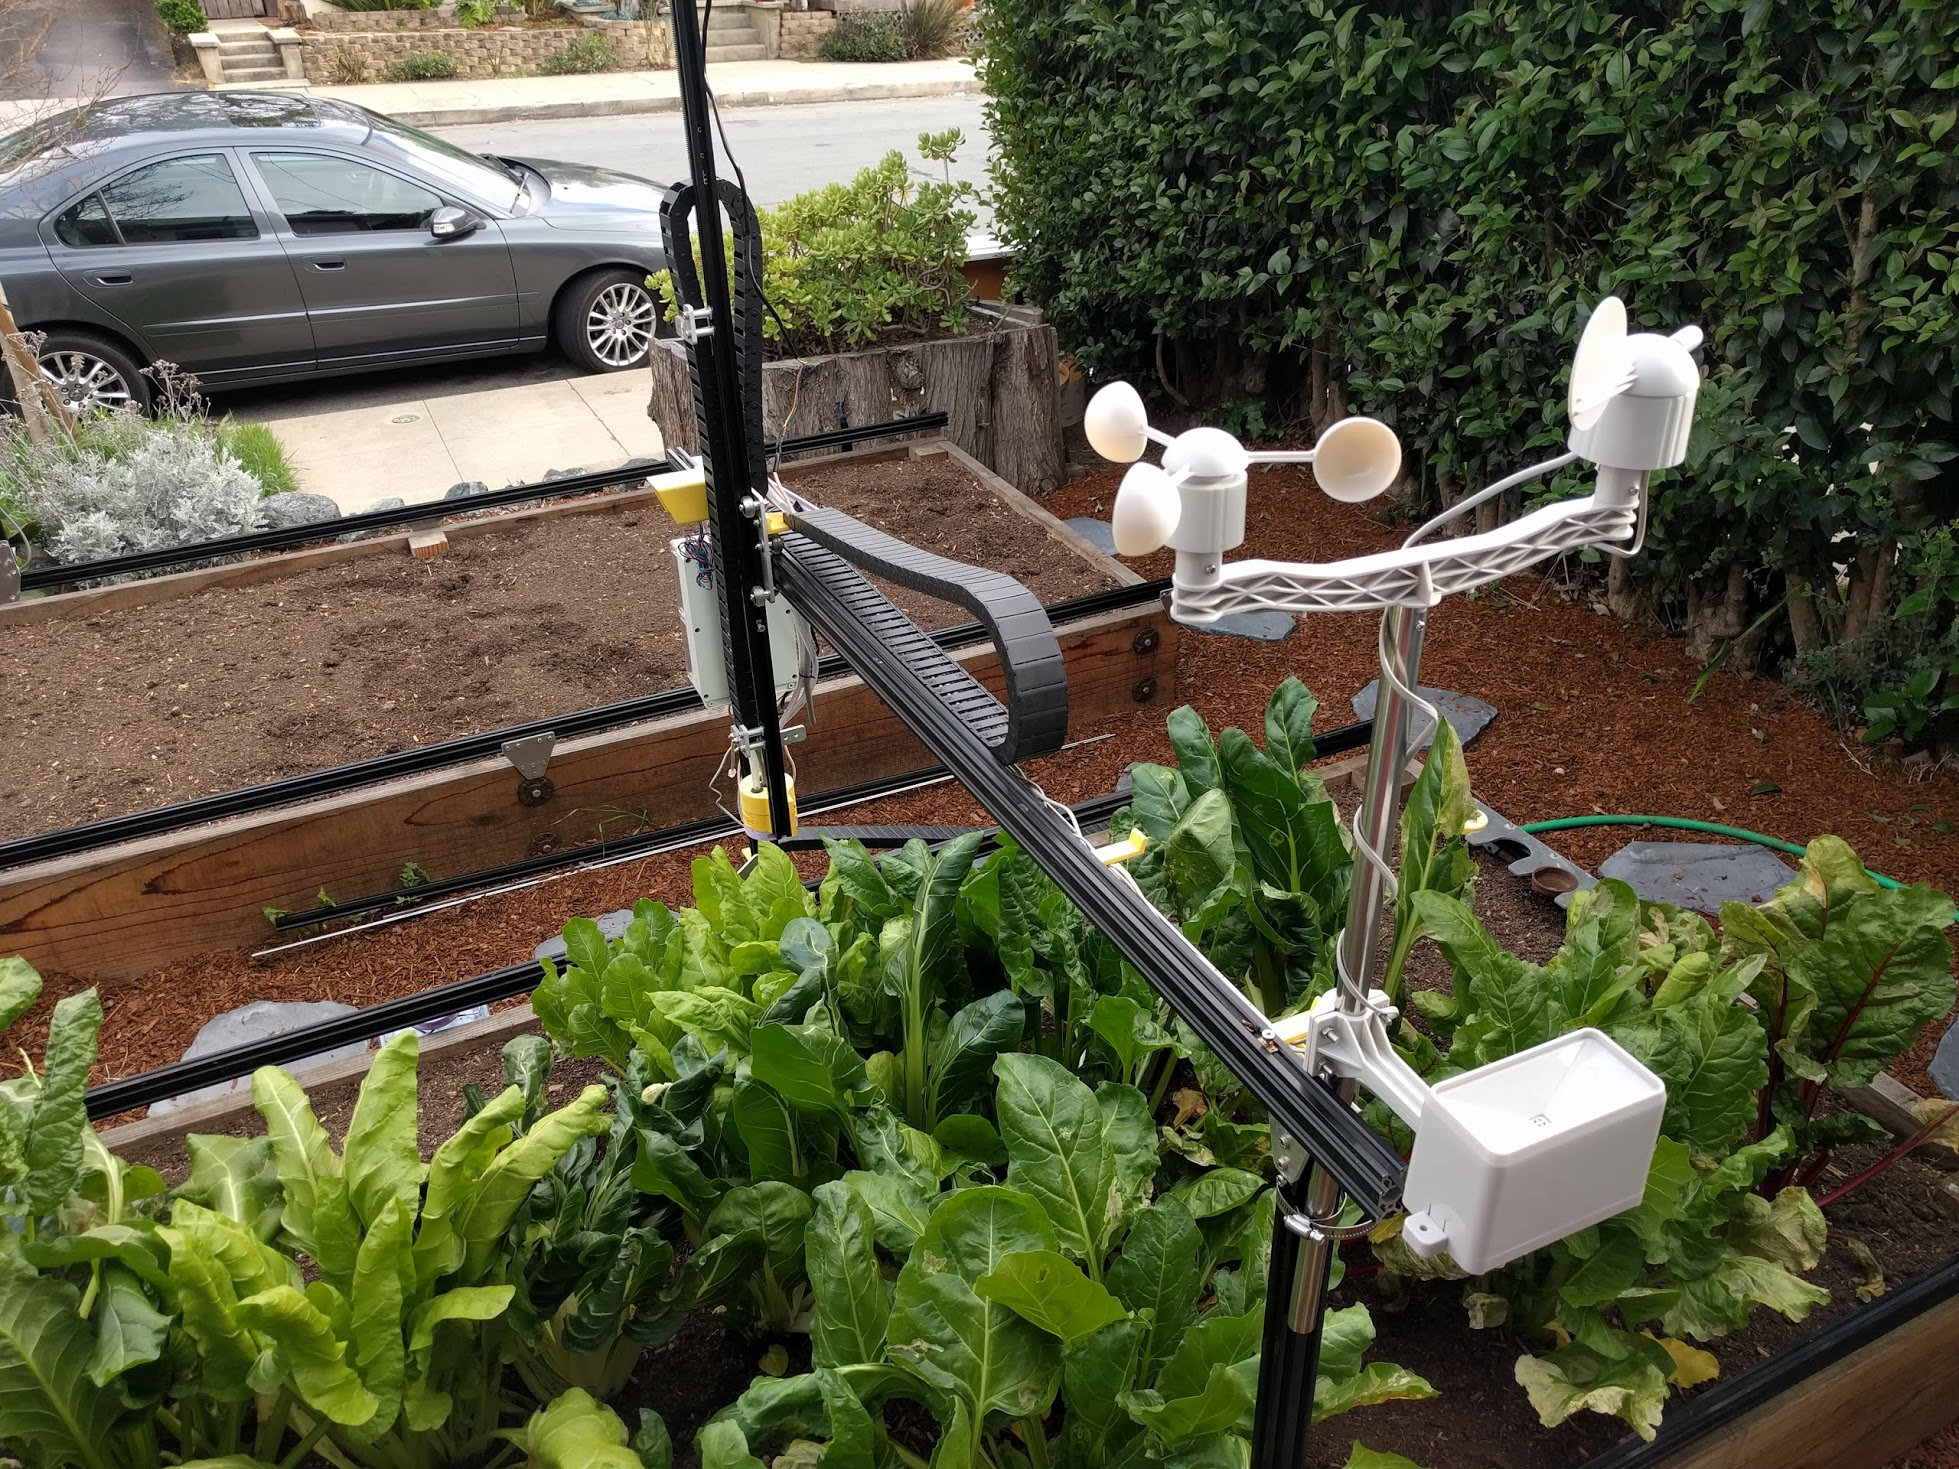 Edible Innovations: FarmBot Helps Automate Small-Scale Food Production